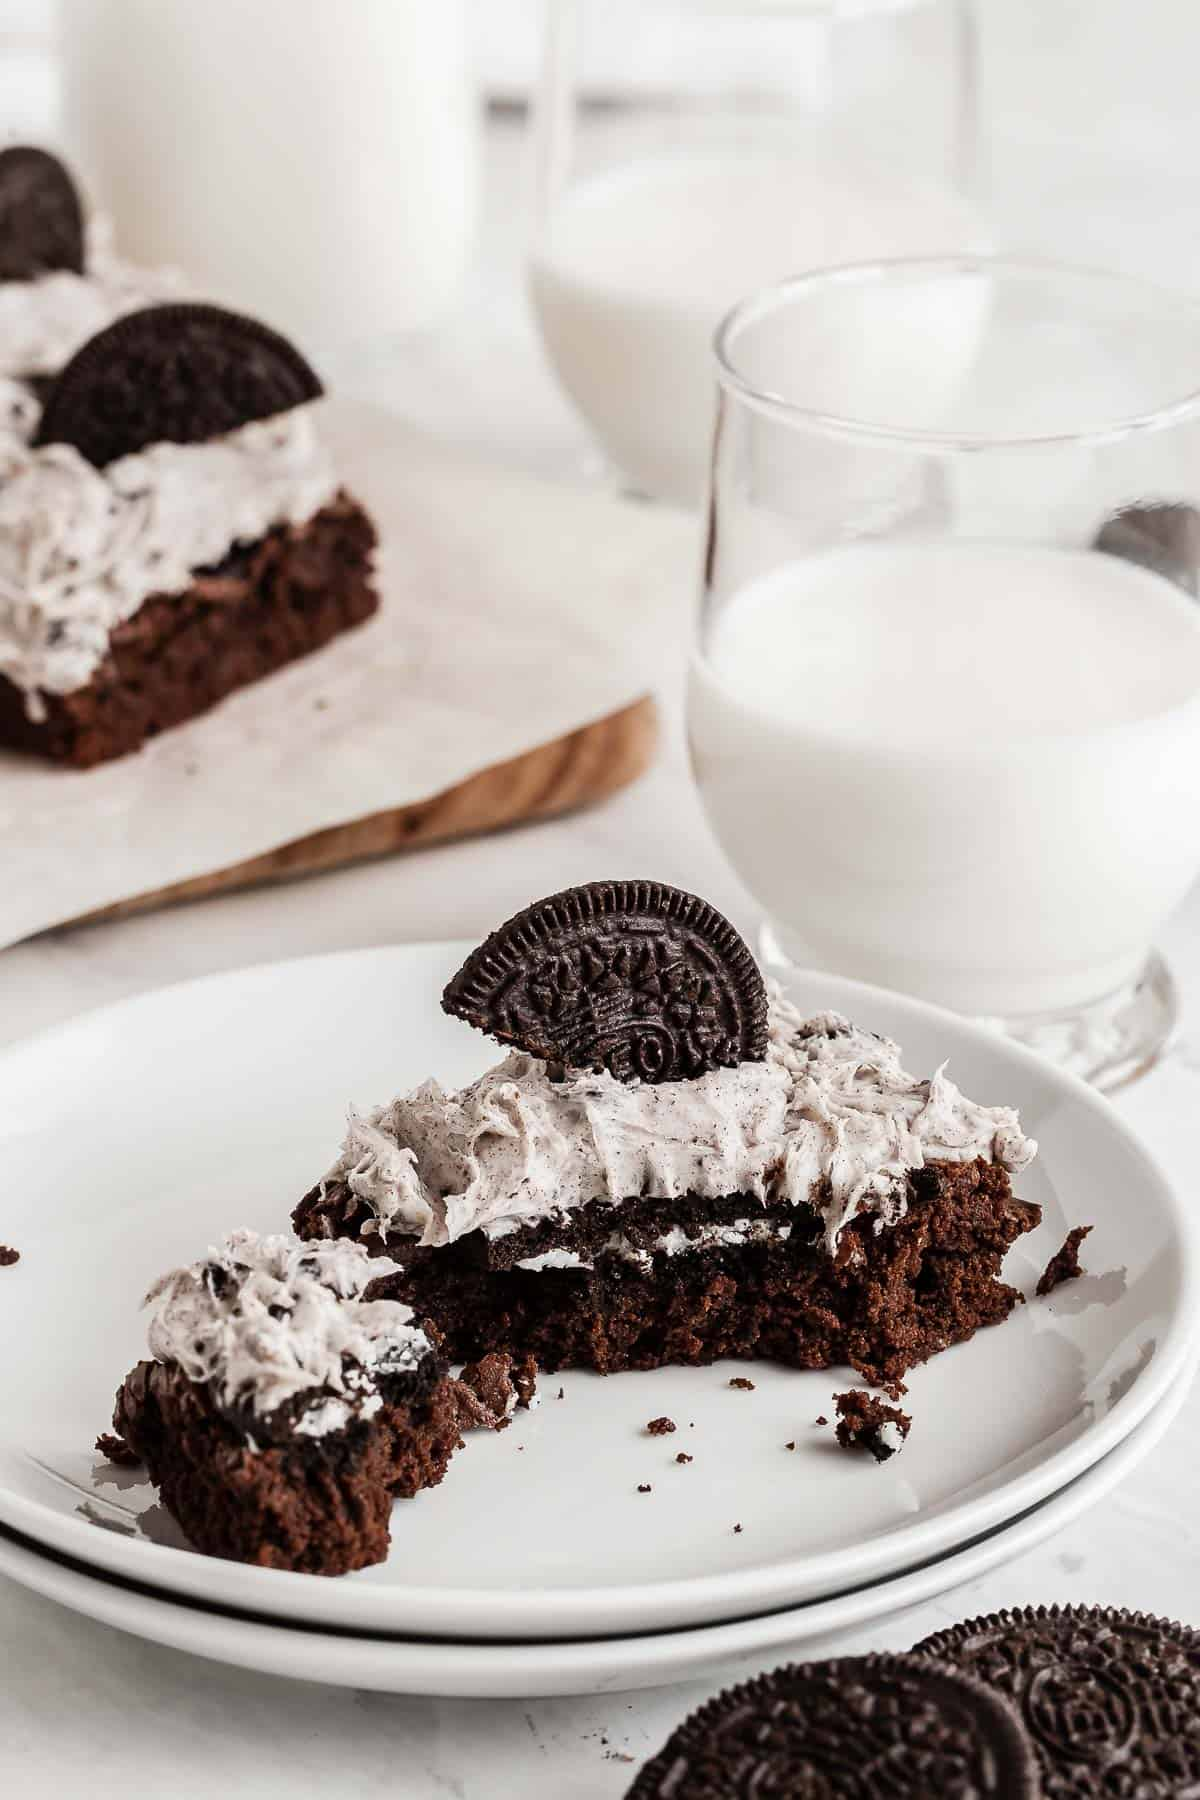 Frosted oreo brownie on white plate with bite missing.